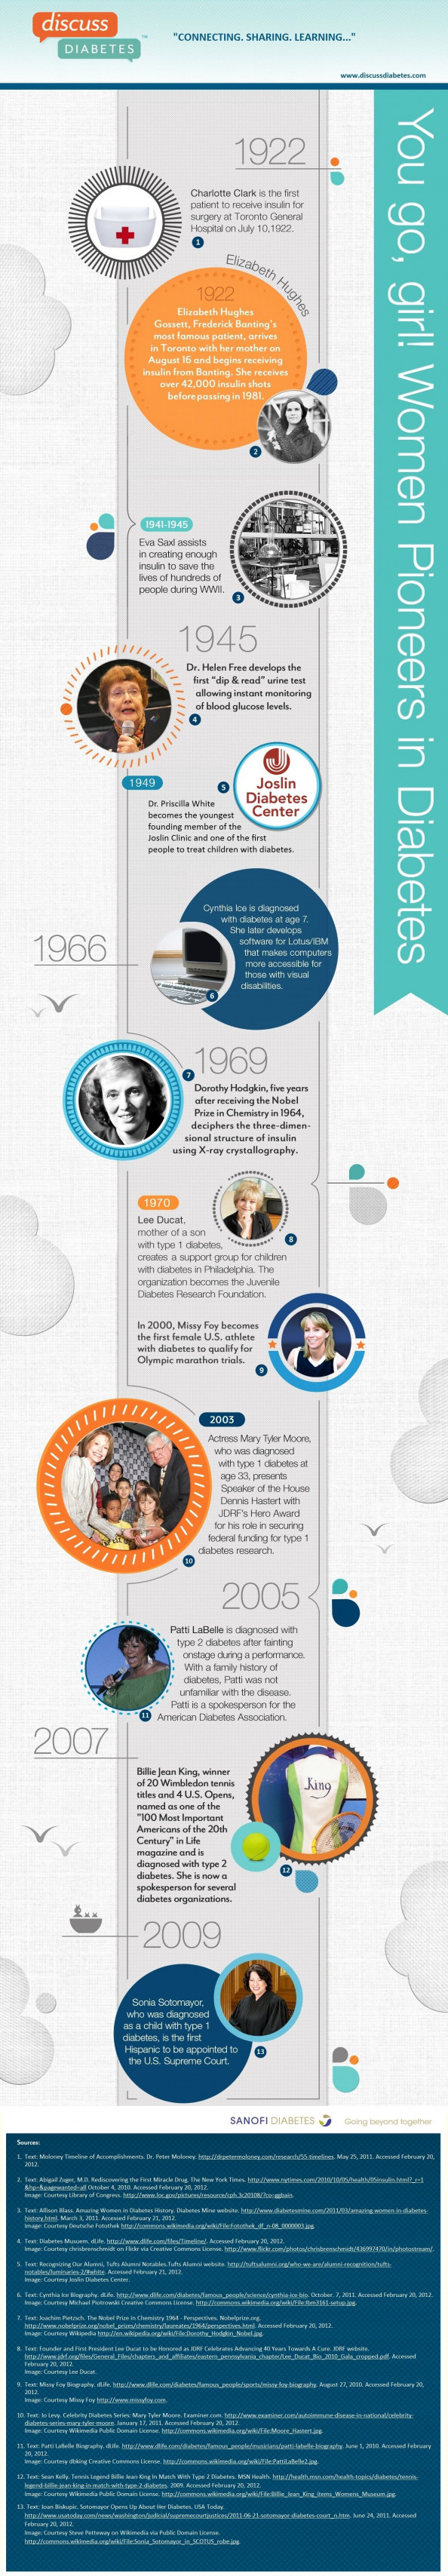 You Go, Girl! Women Pioneers in Diabetes  Infographic